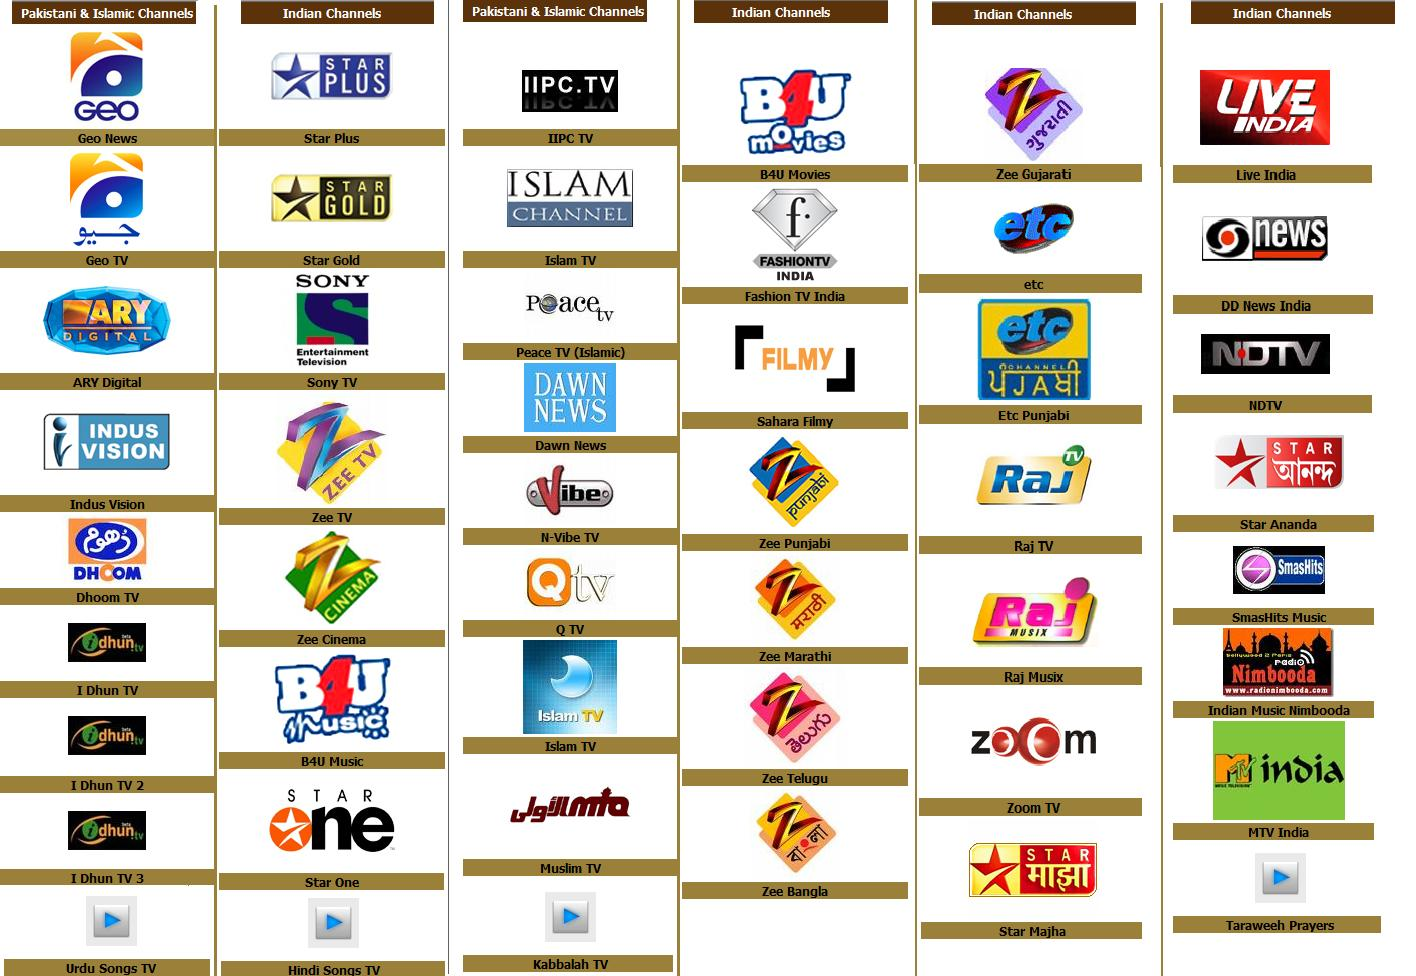 Live tv channel wiki 2014